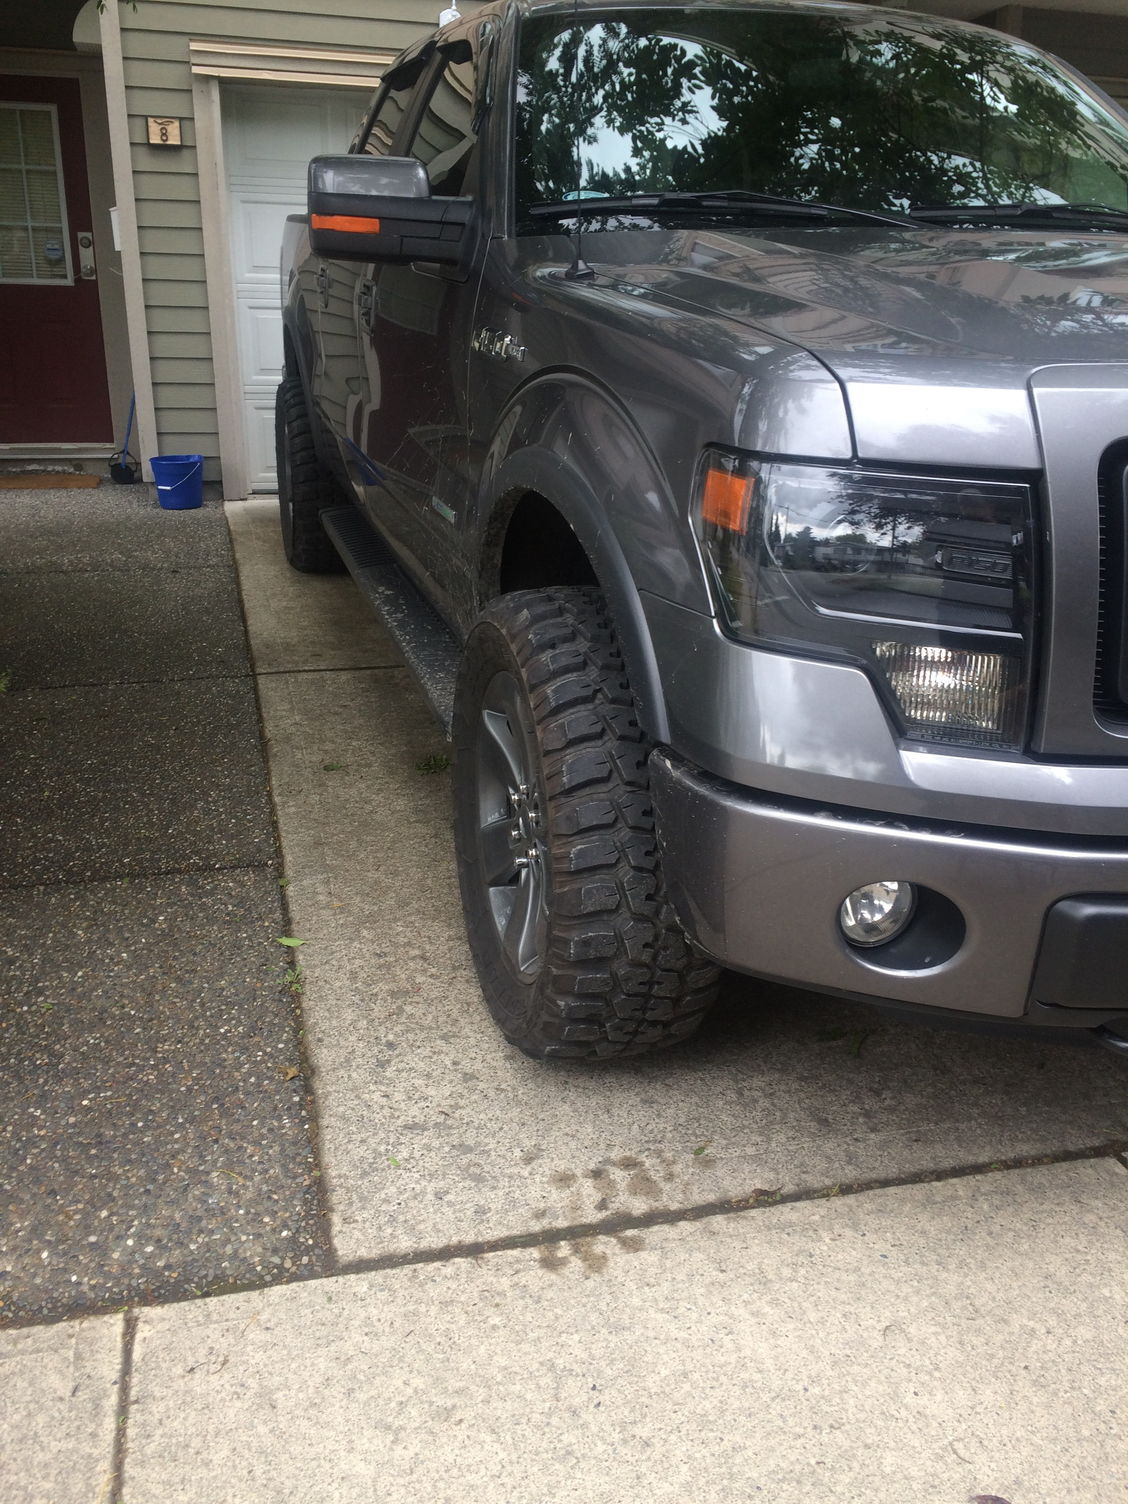 Stock wheels and spacers, let's see them! - Page 32 - Ford F150 Forum - Community of Ford Truck Fans